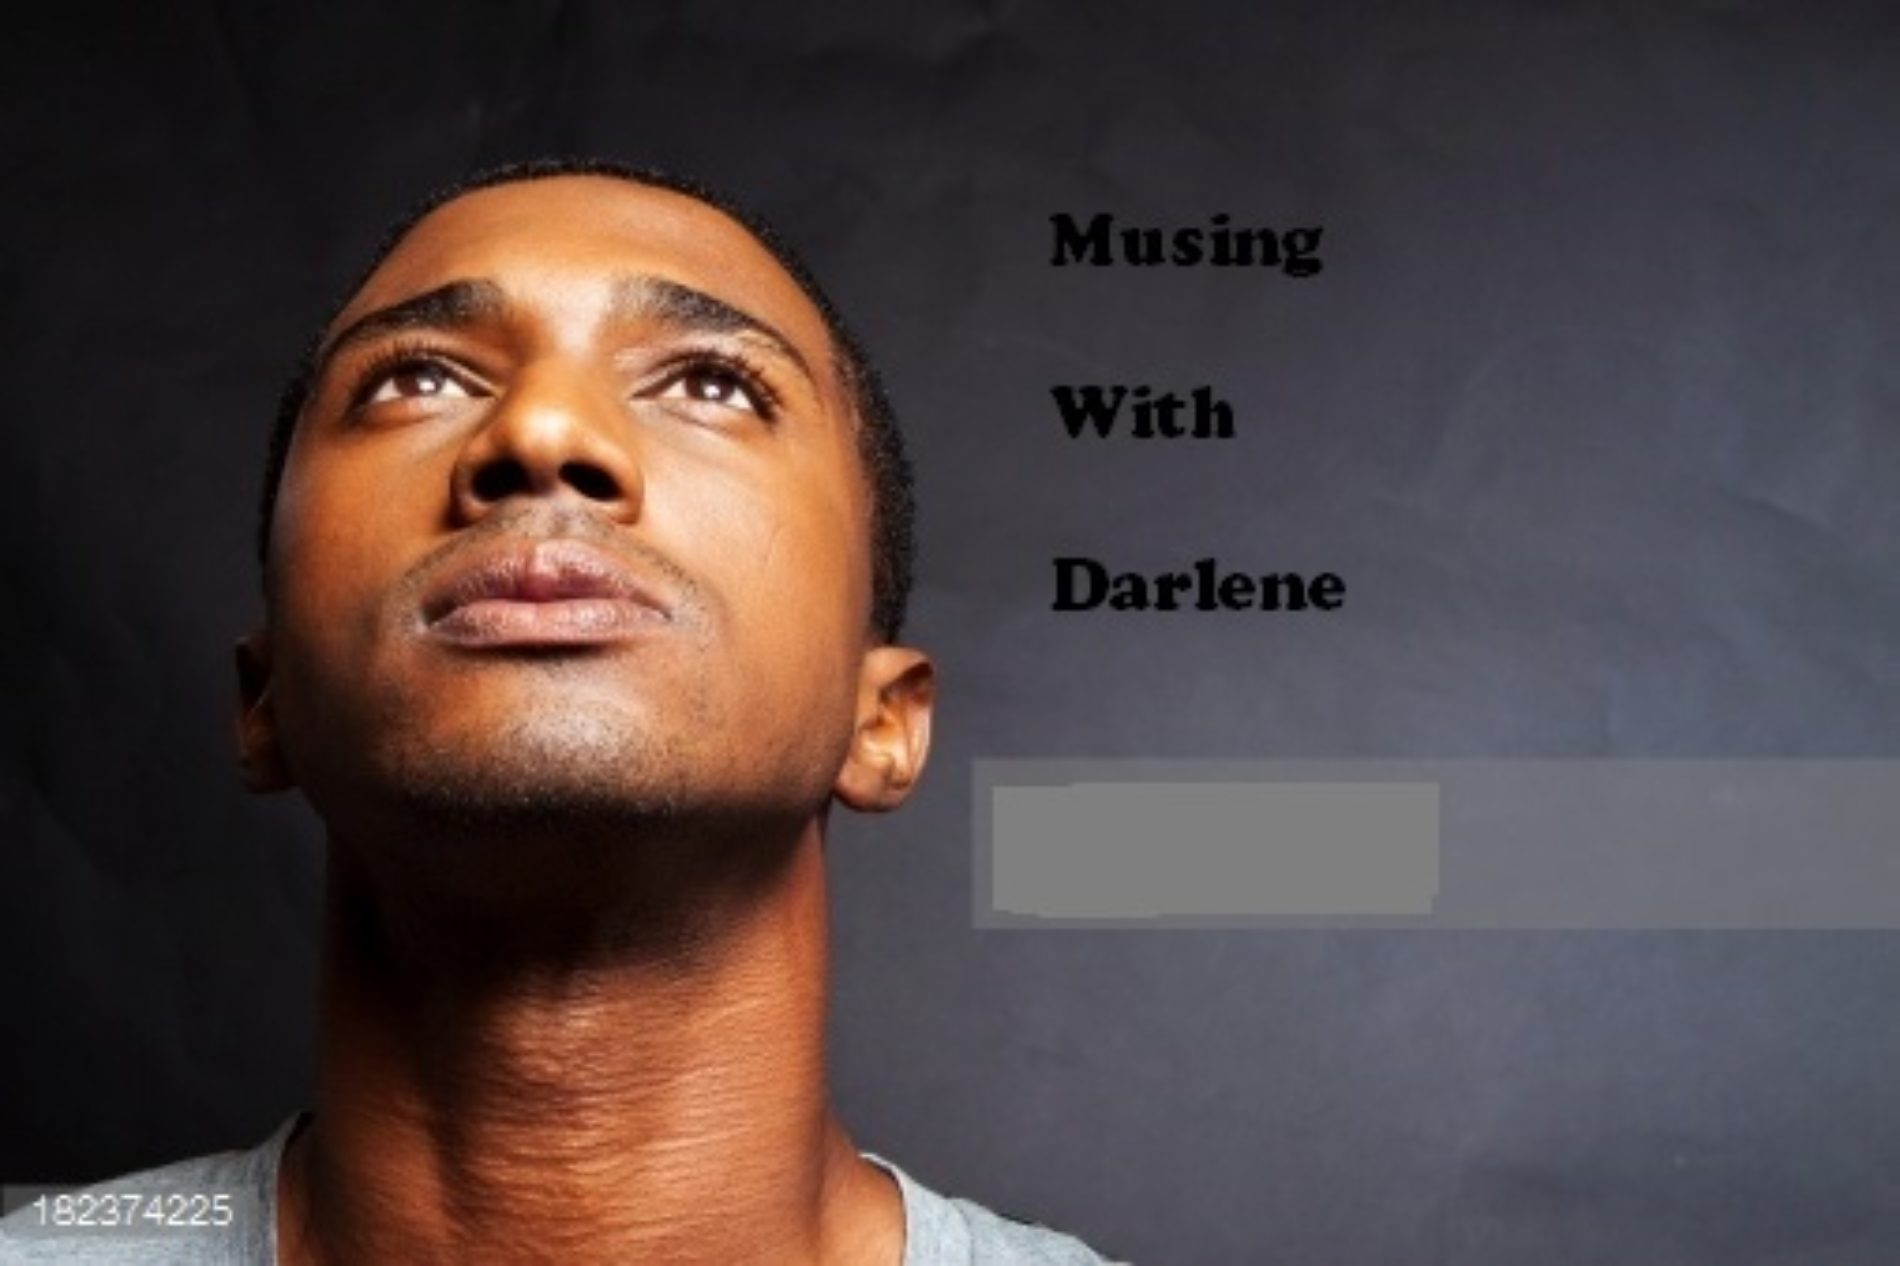 MUSING WITH DARLENE: MOTHER SUPREME